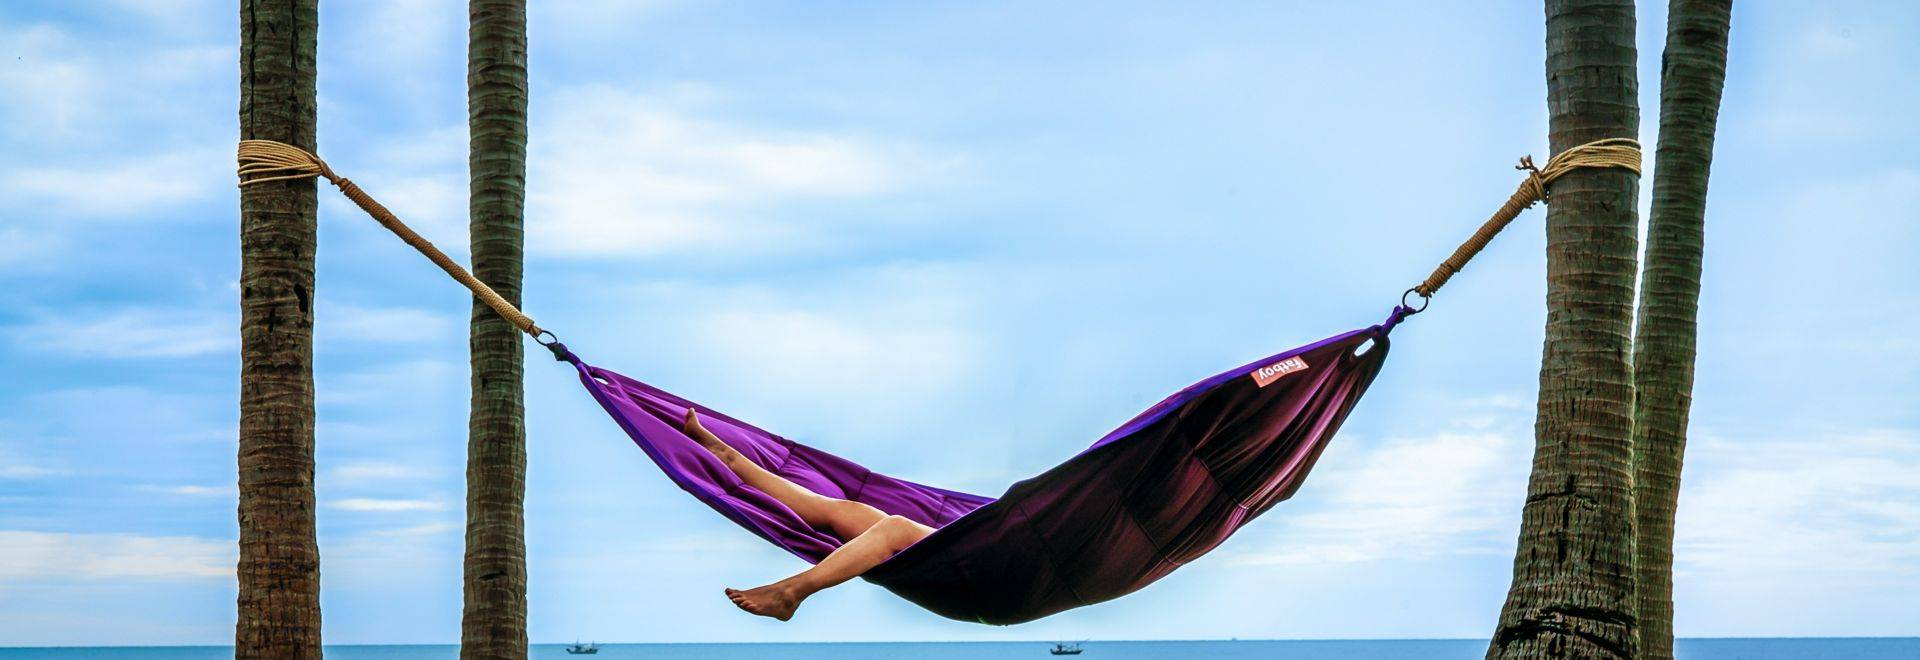 Barai-Spa-hammock-model.jpg